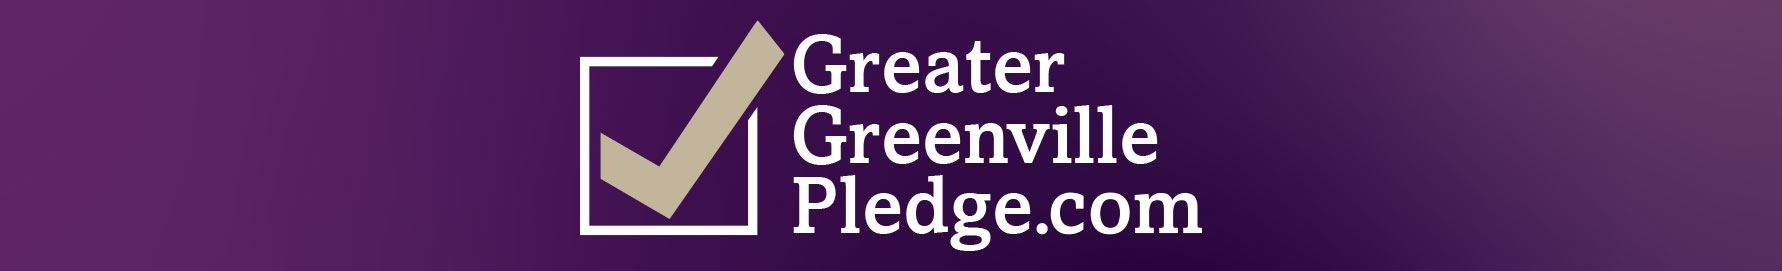 Greater Greenville pledge web banner